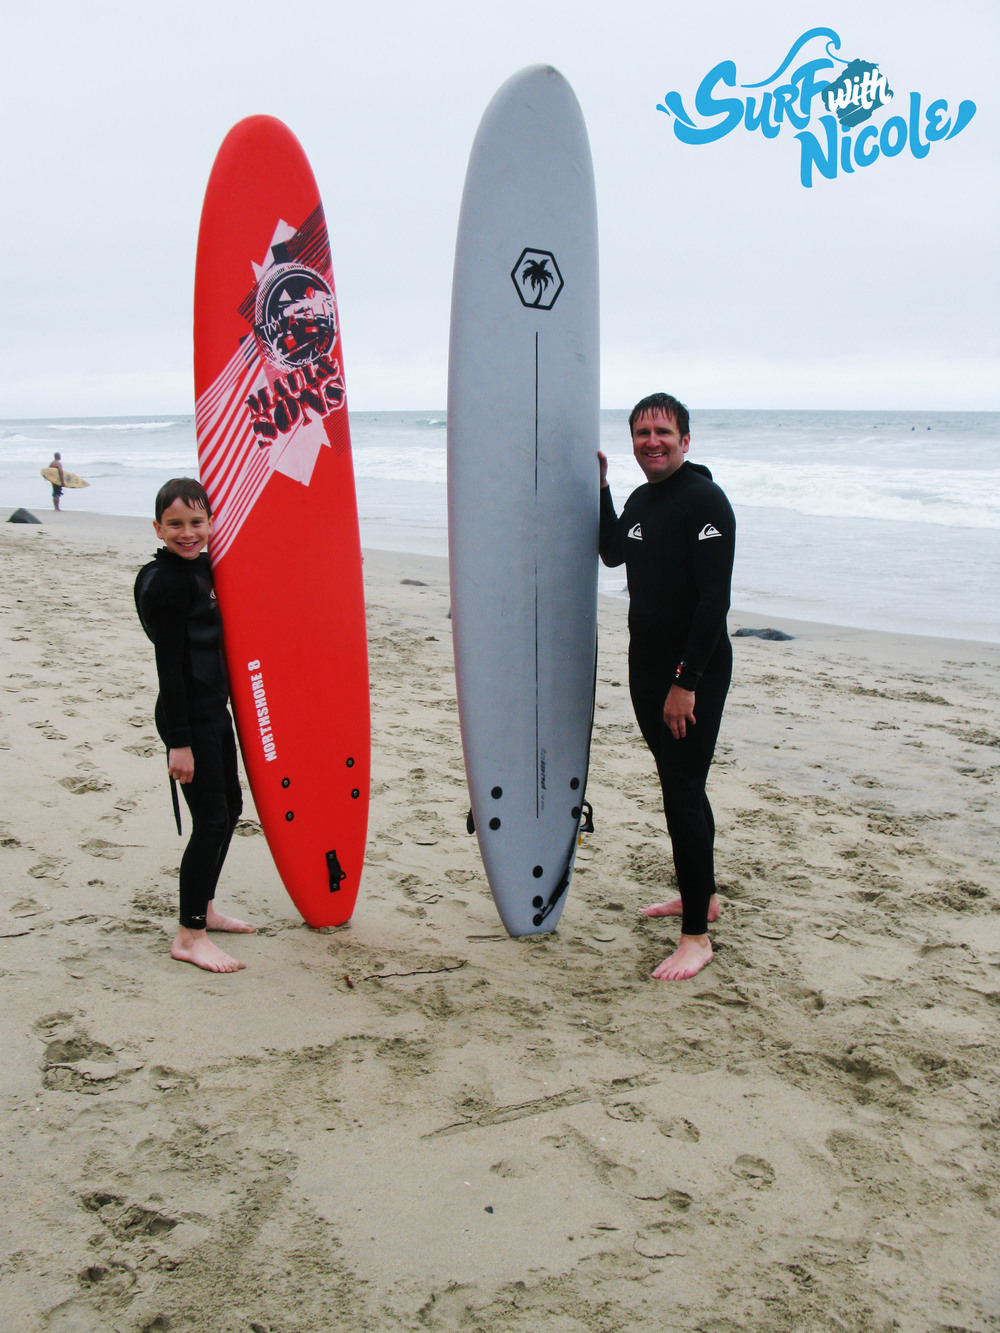 lbi-surf-lesson-surf-with-nicole-10.jpg